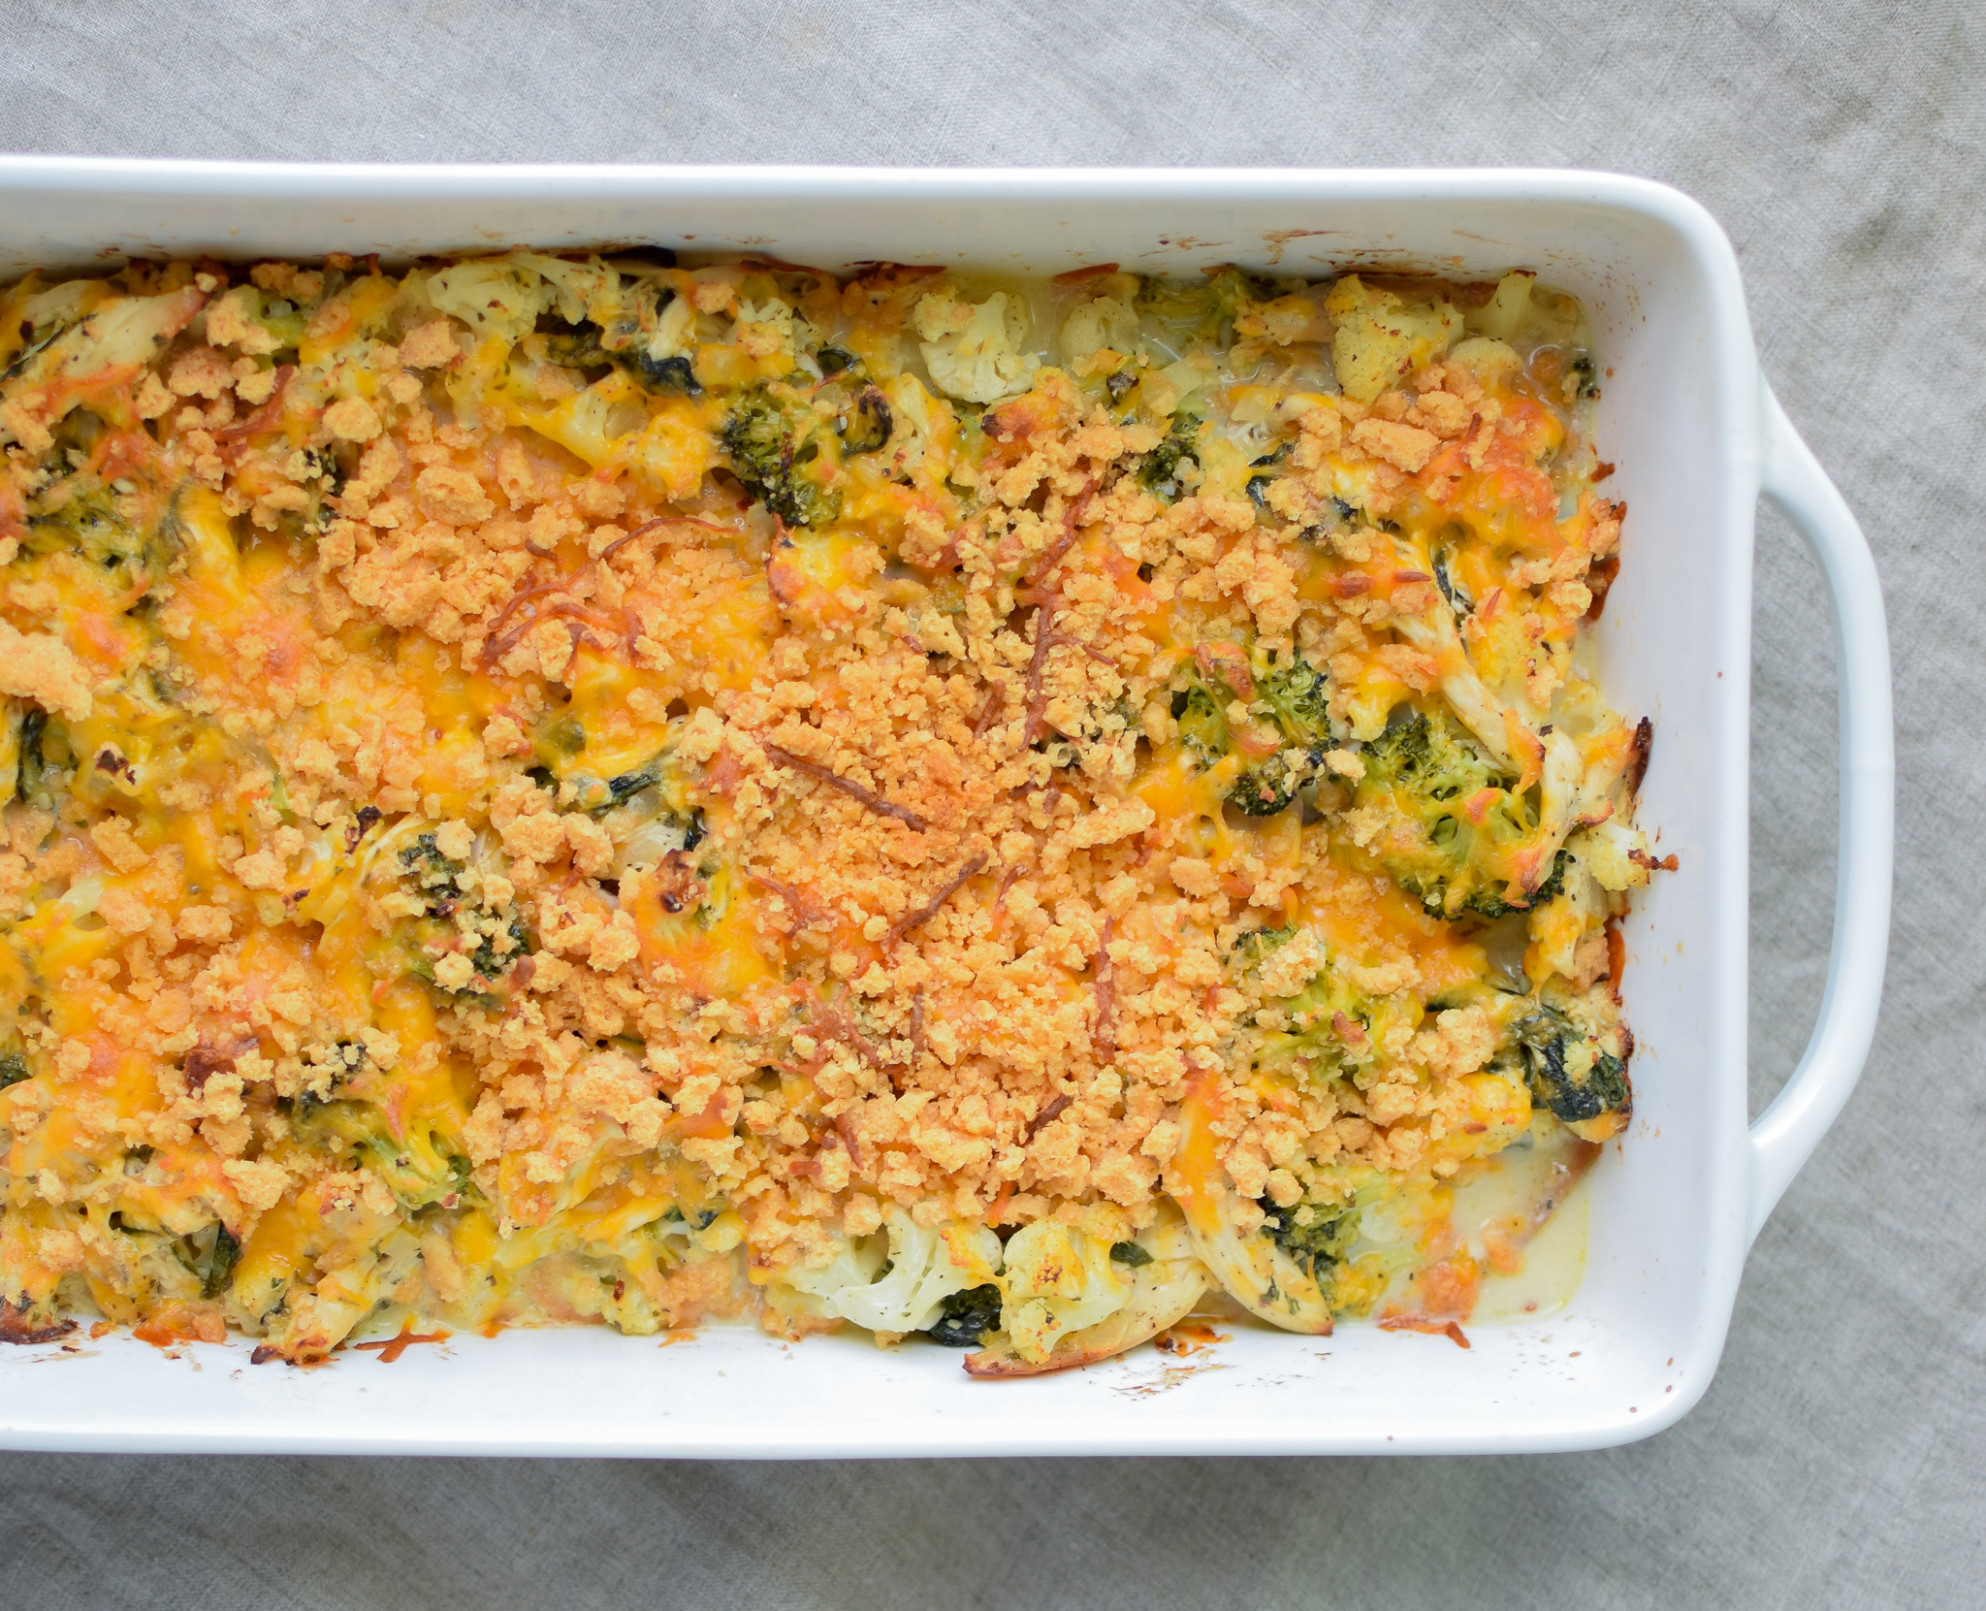 Veggie Loaded Rotisserie Chicken Casserole - Project Meal Plan